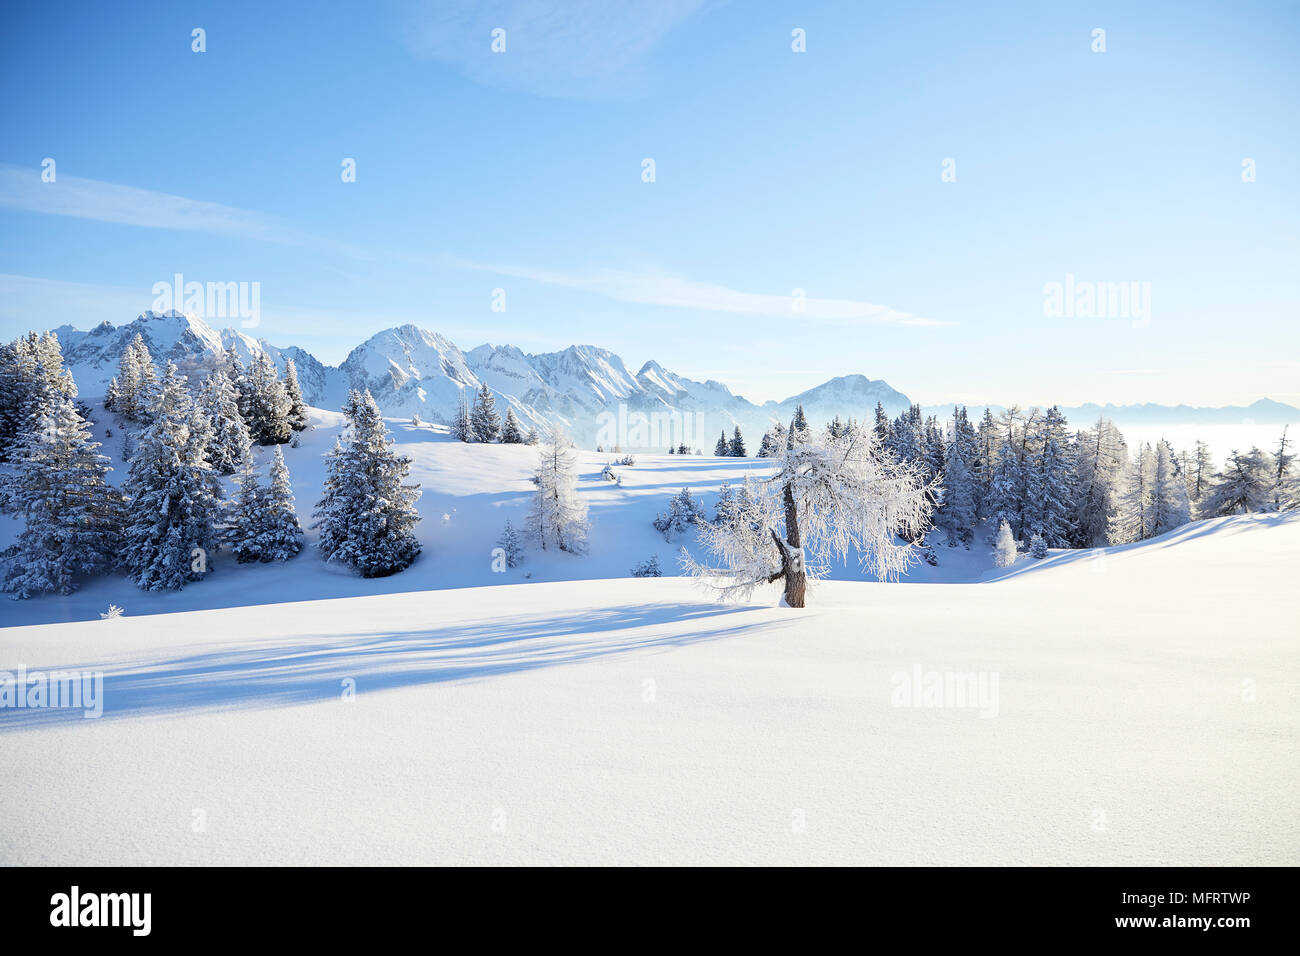 Winter landscape, Simmering Alm, Obsteig, Mieming, Tyrol, Austria - Stock Image